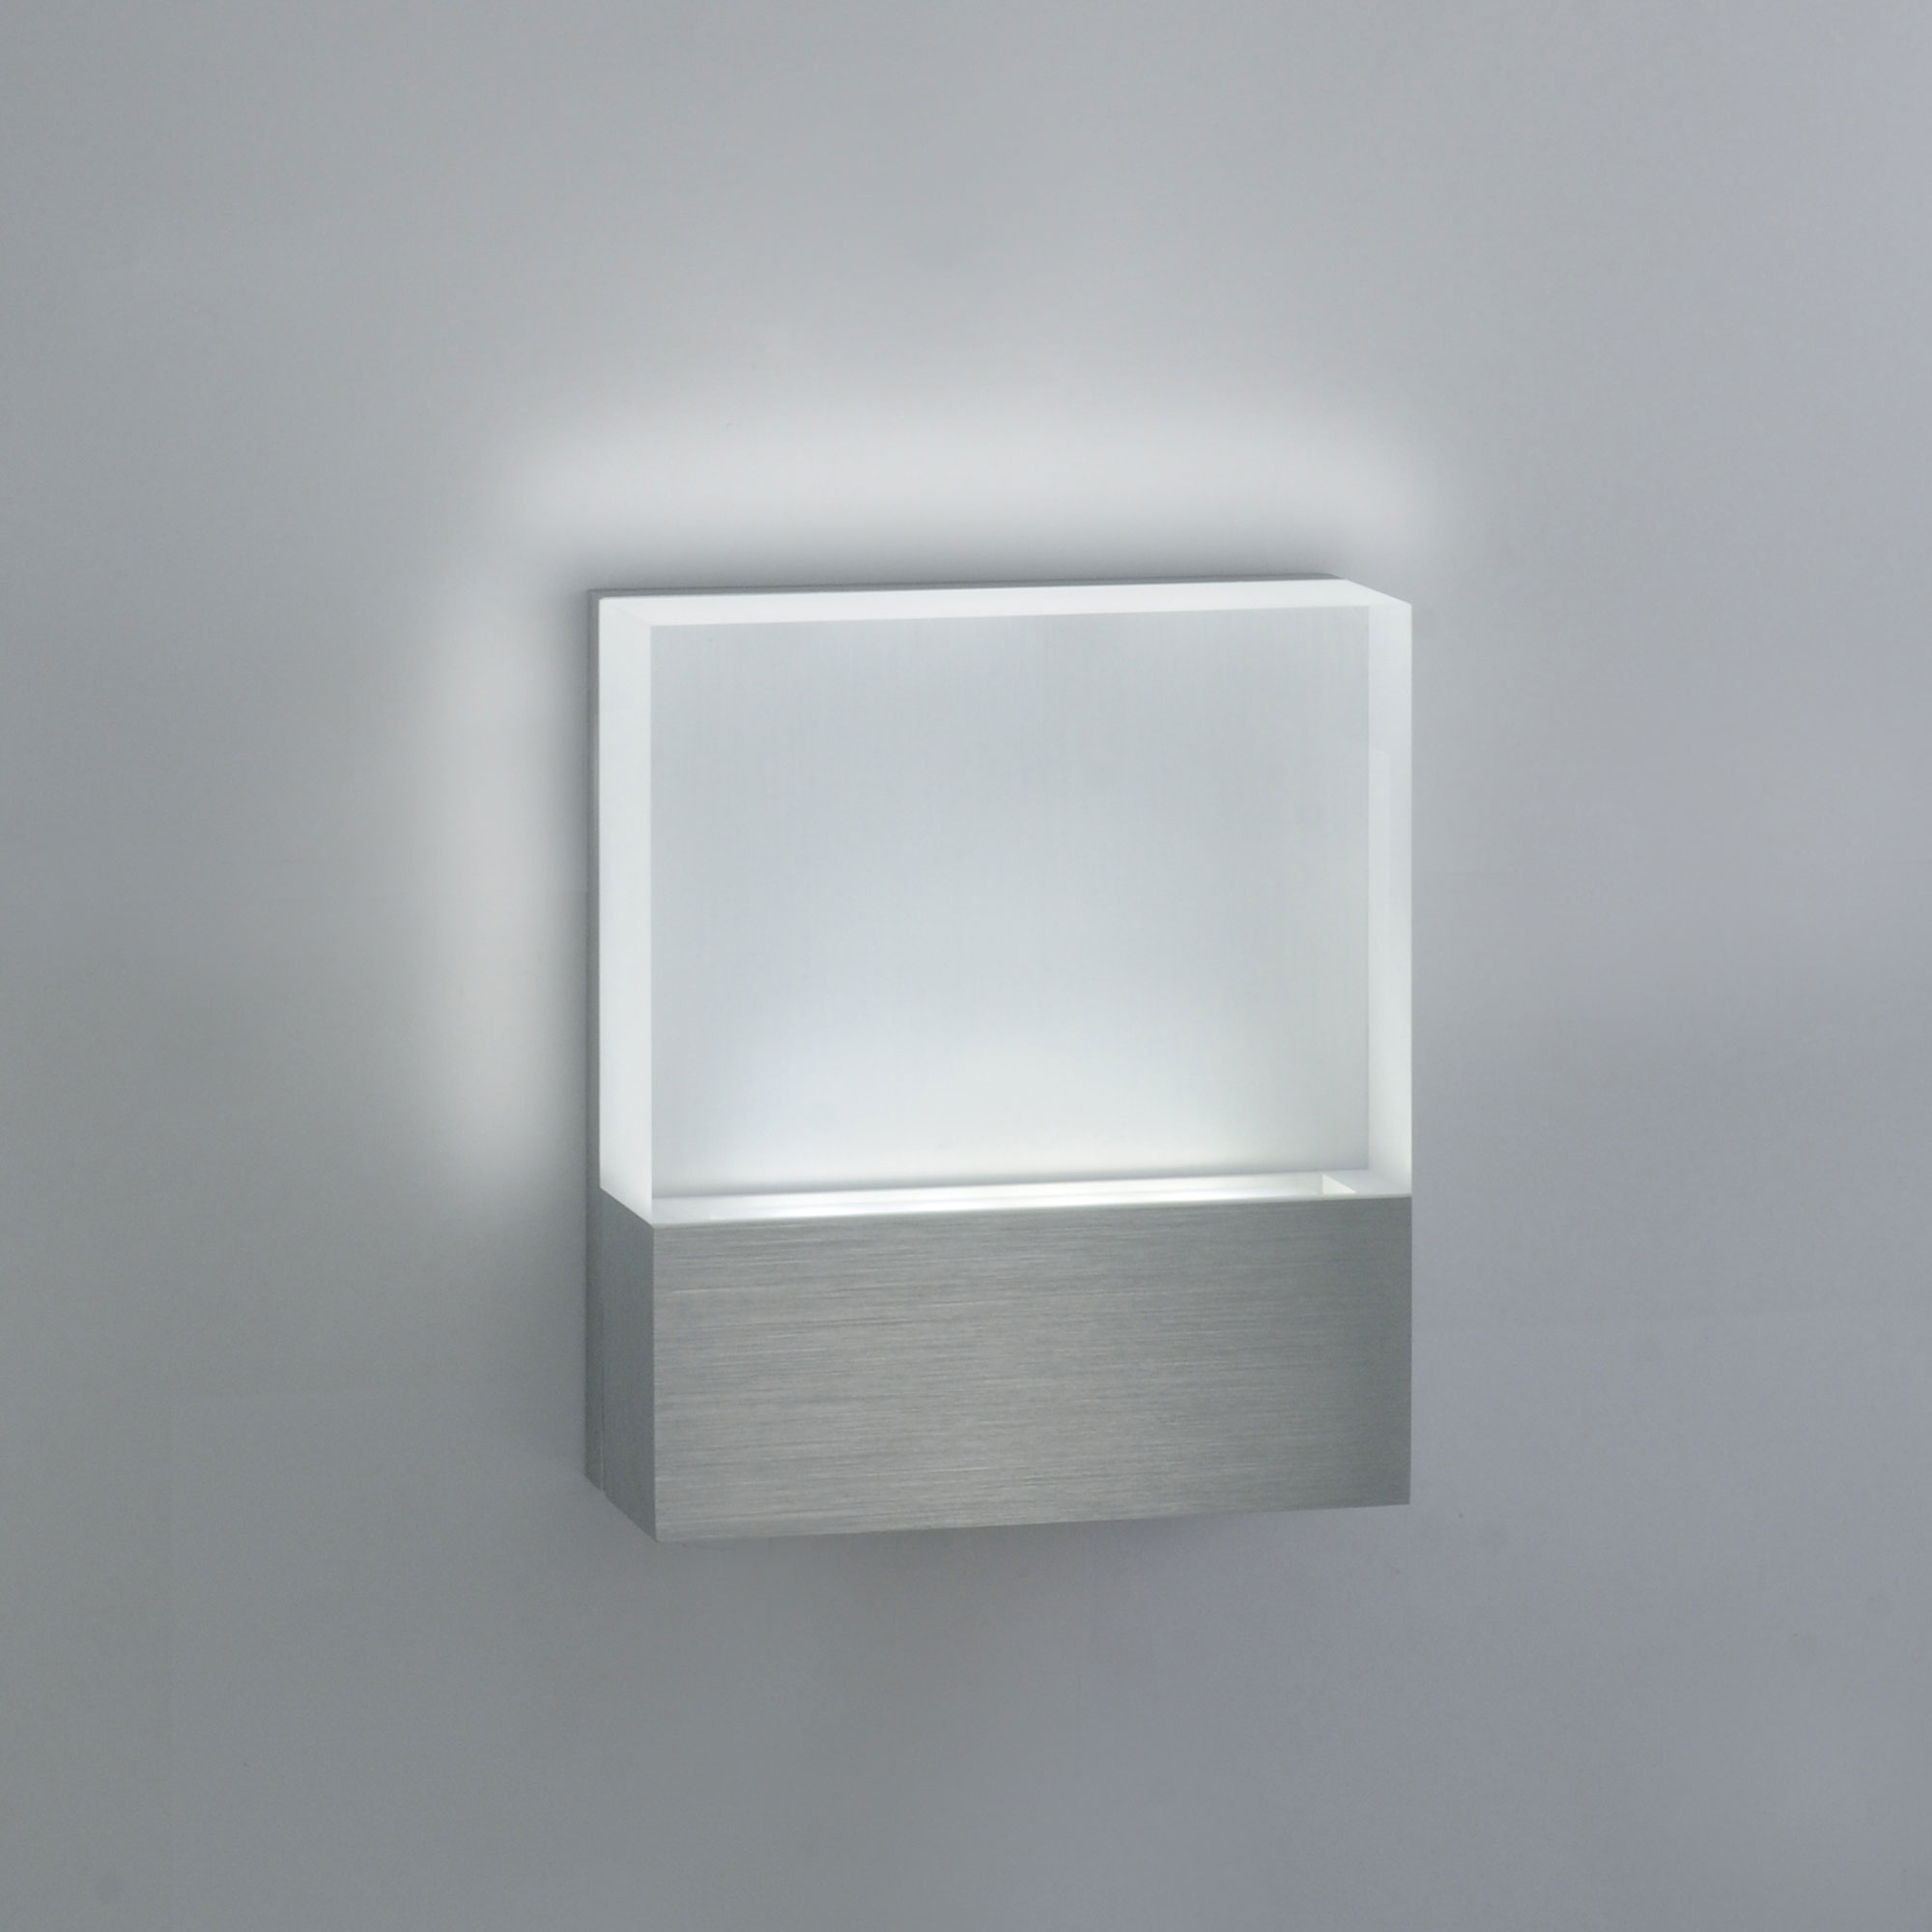 LED ELV Dimmable Wall Sconce by Edge Lighting | TV-W-L1-ELV-SA